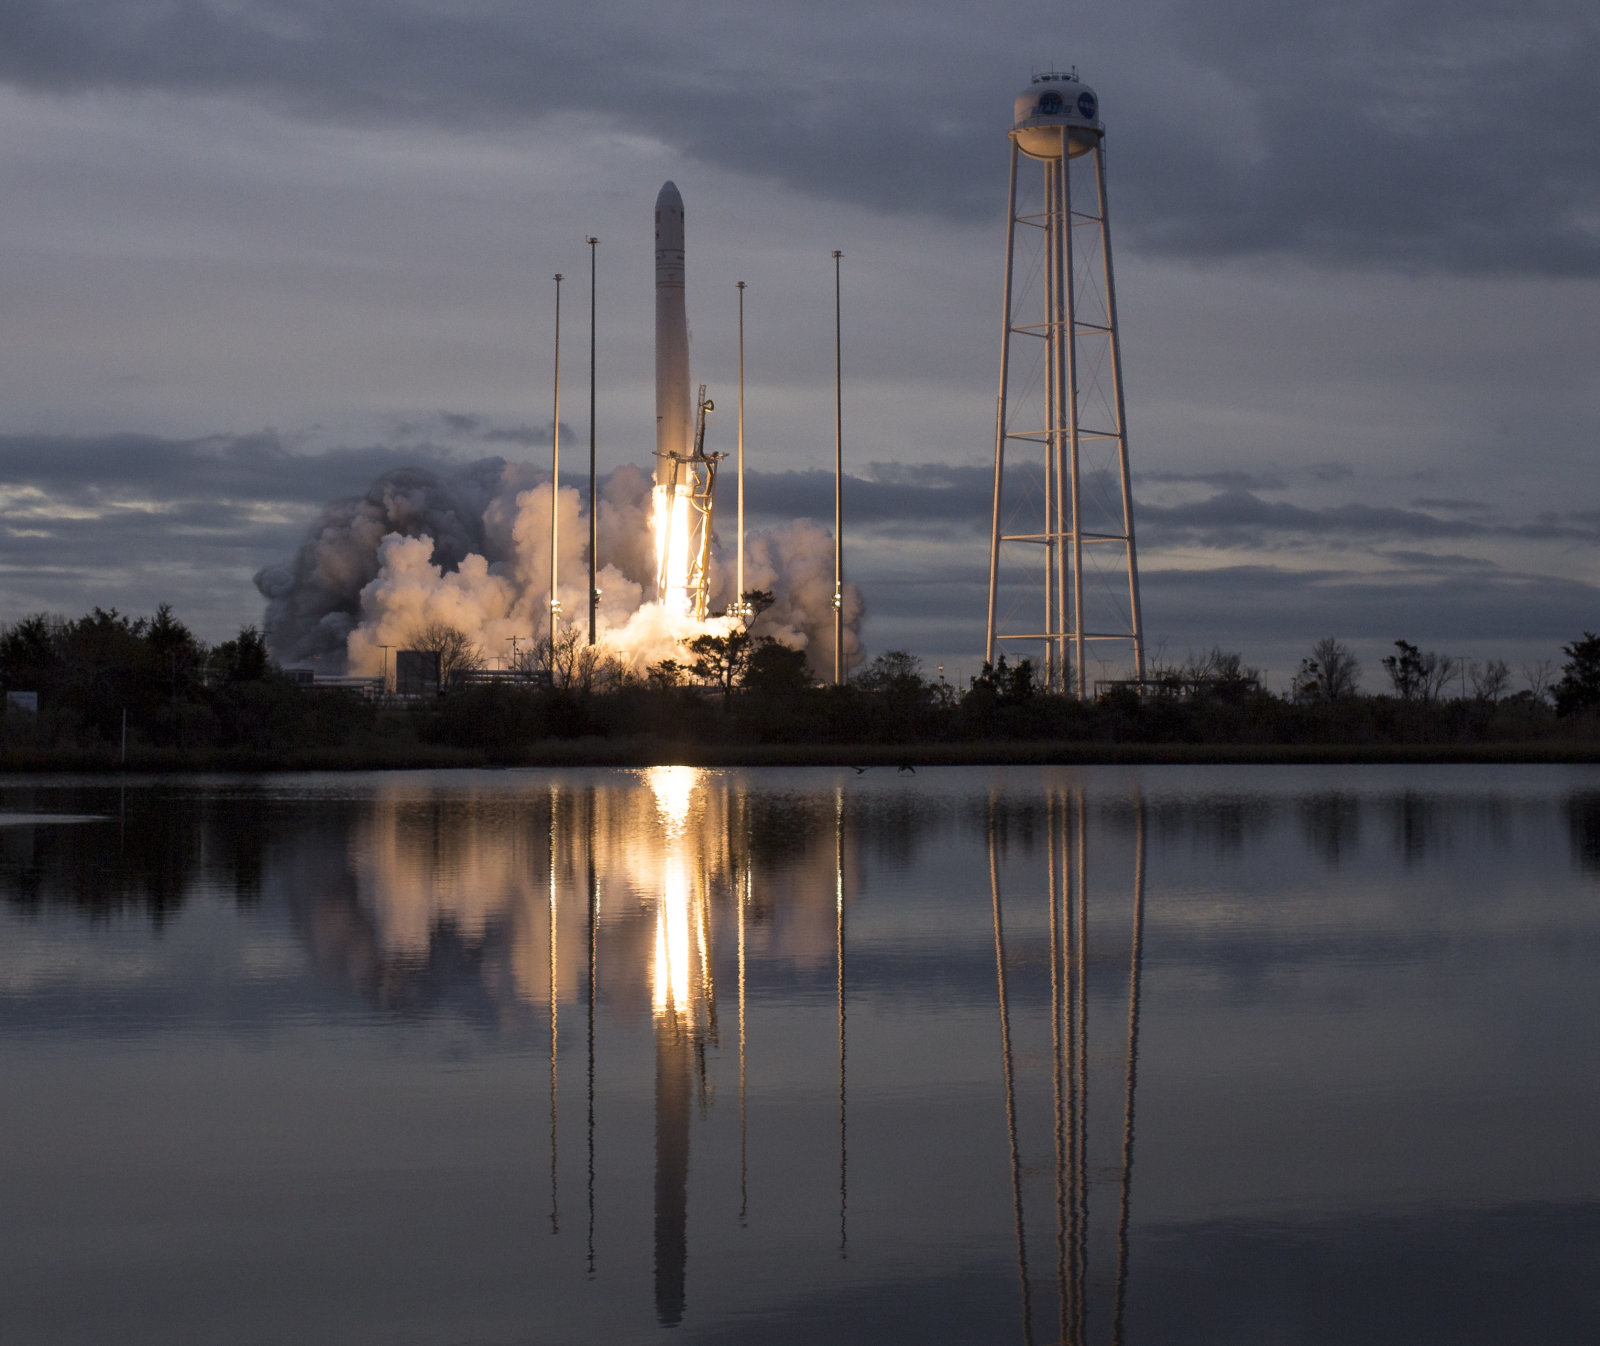 WALLOPS ISLAND, VA - NOVEMBER 12:  In this handout provided by the National Aeronautics and Space Administration (NASA), The Orbital ATK Antares rocket, with the Cygnus spacecraft onboard, launches from Pad-0A on November 12, 2017 at NASA's Wallops Flight Facility in Wallops Island, Virginia. Orbital ATK's eighth contracted cargo resupply mission with NASA to the International Space Station will deliver approximately 7,400 pounds of science and research, crew supplies and vehicle hardware to the orbital laboratory and its crew. (Photo Bill Ingalls/NASA via Getty Images)